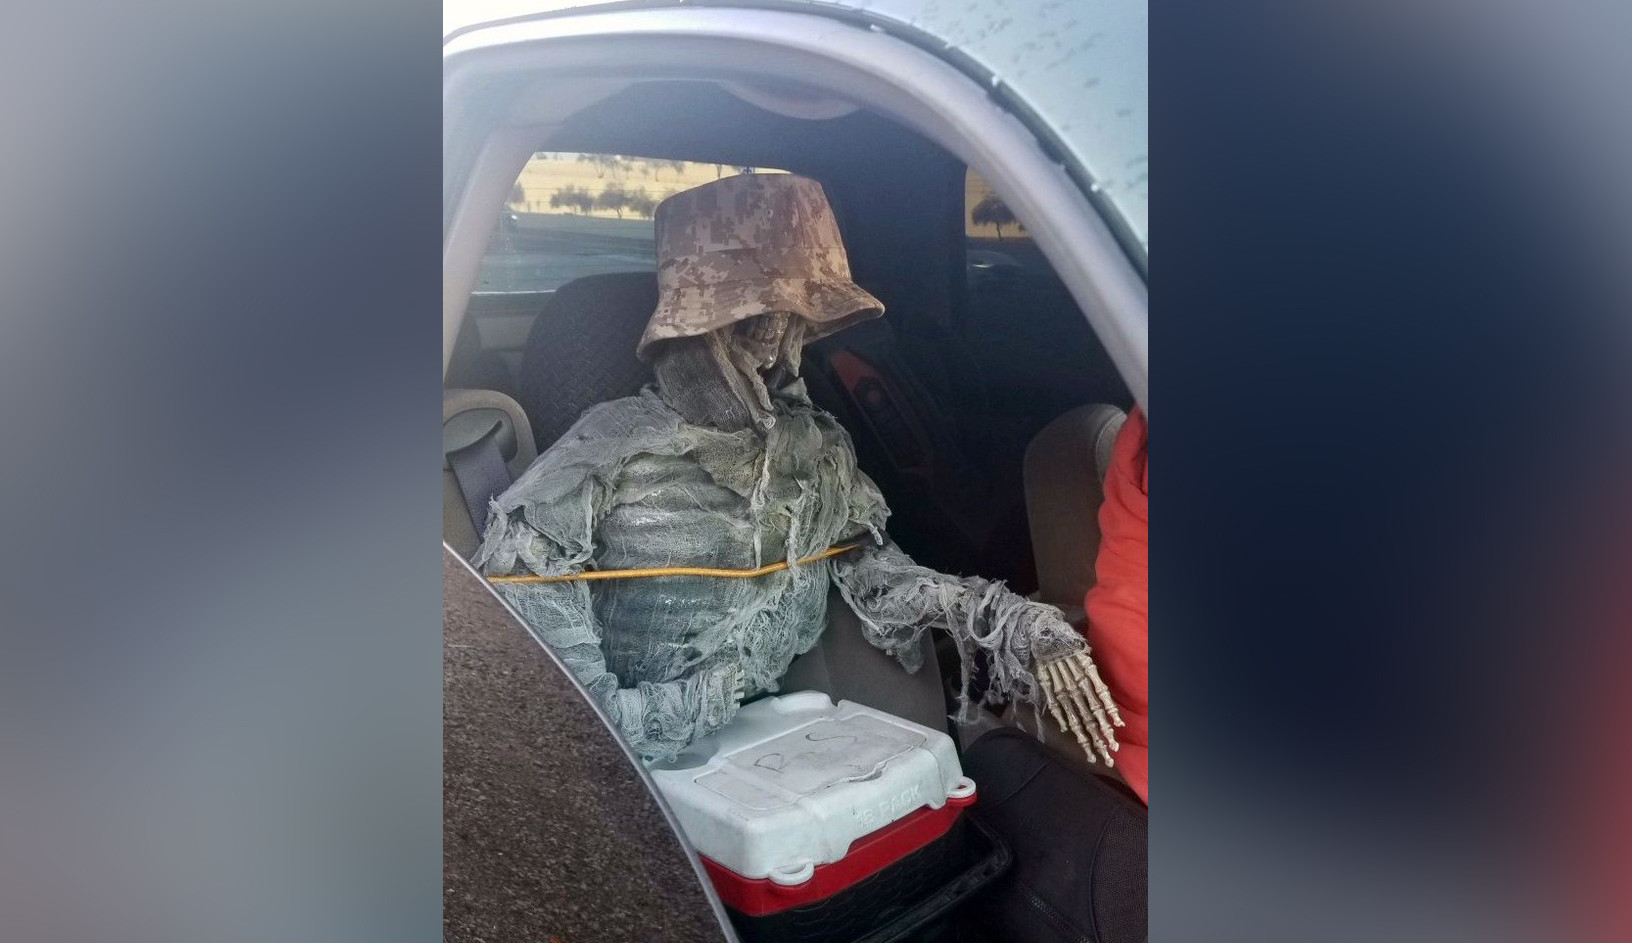 Bonehead driver busted for driving in high-occupancy vehicle lane with dressed-up skeleton